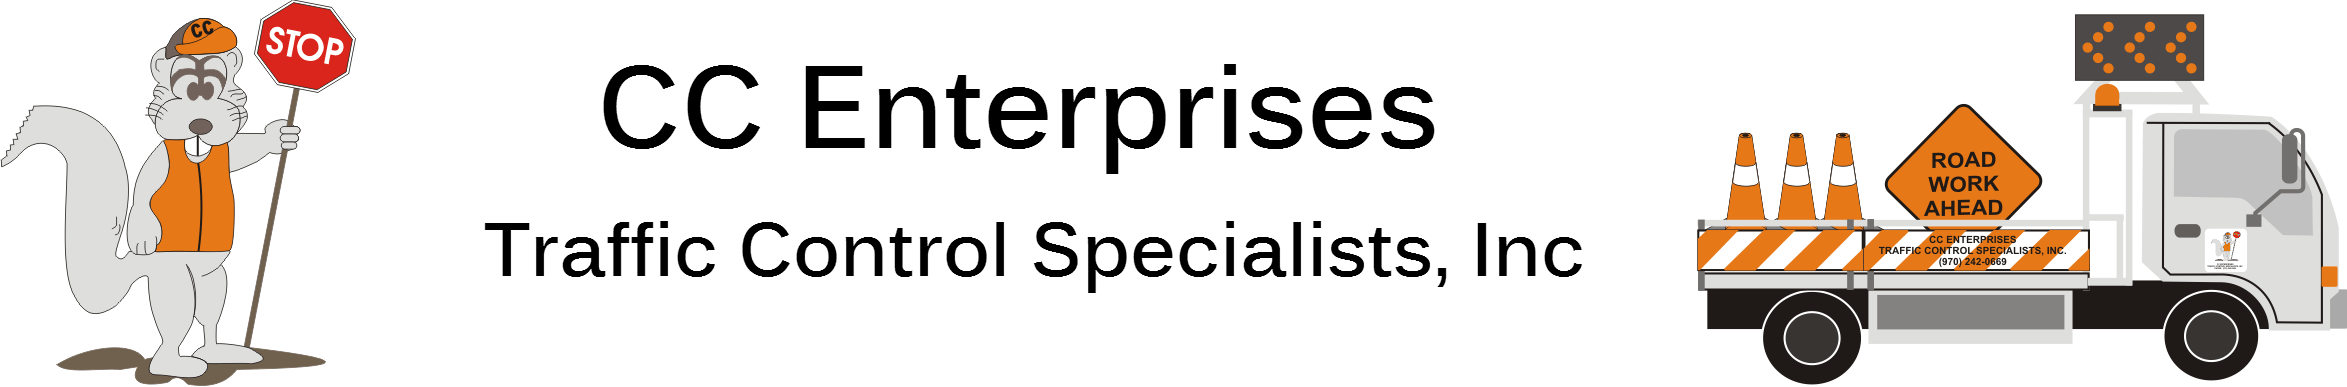 CC Enterprises-Traffic Control Specialists, Inc.